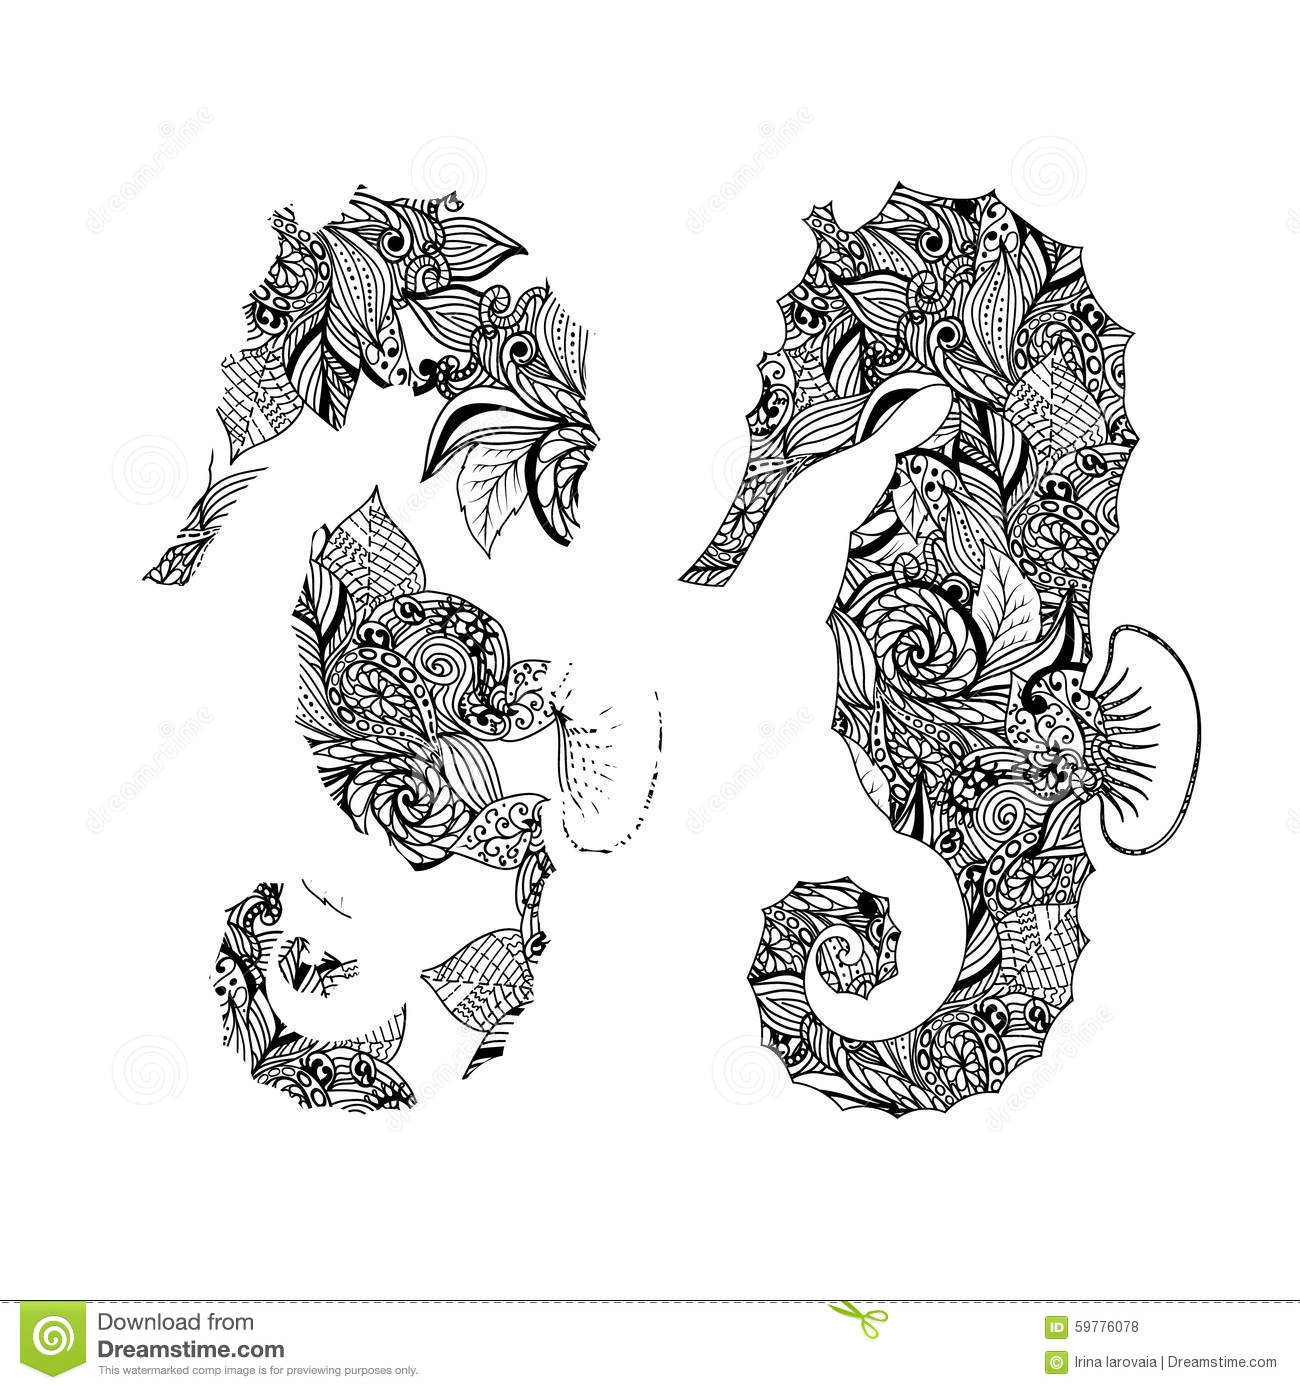 25 Glorious Old School Tattoo And Ideas as well Turtle silhouette also Polyn C3 A9sien Style Dauphin 27261518 also American Indian Feathers besides Outstanding Circle Tattoo Designs Photo 1. on seahorse tattoo